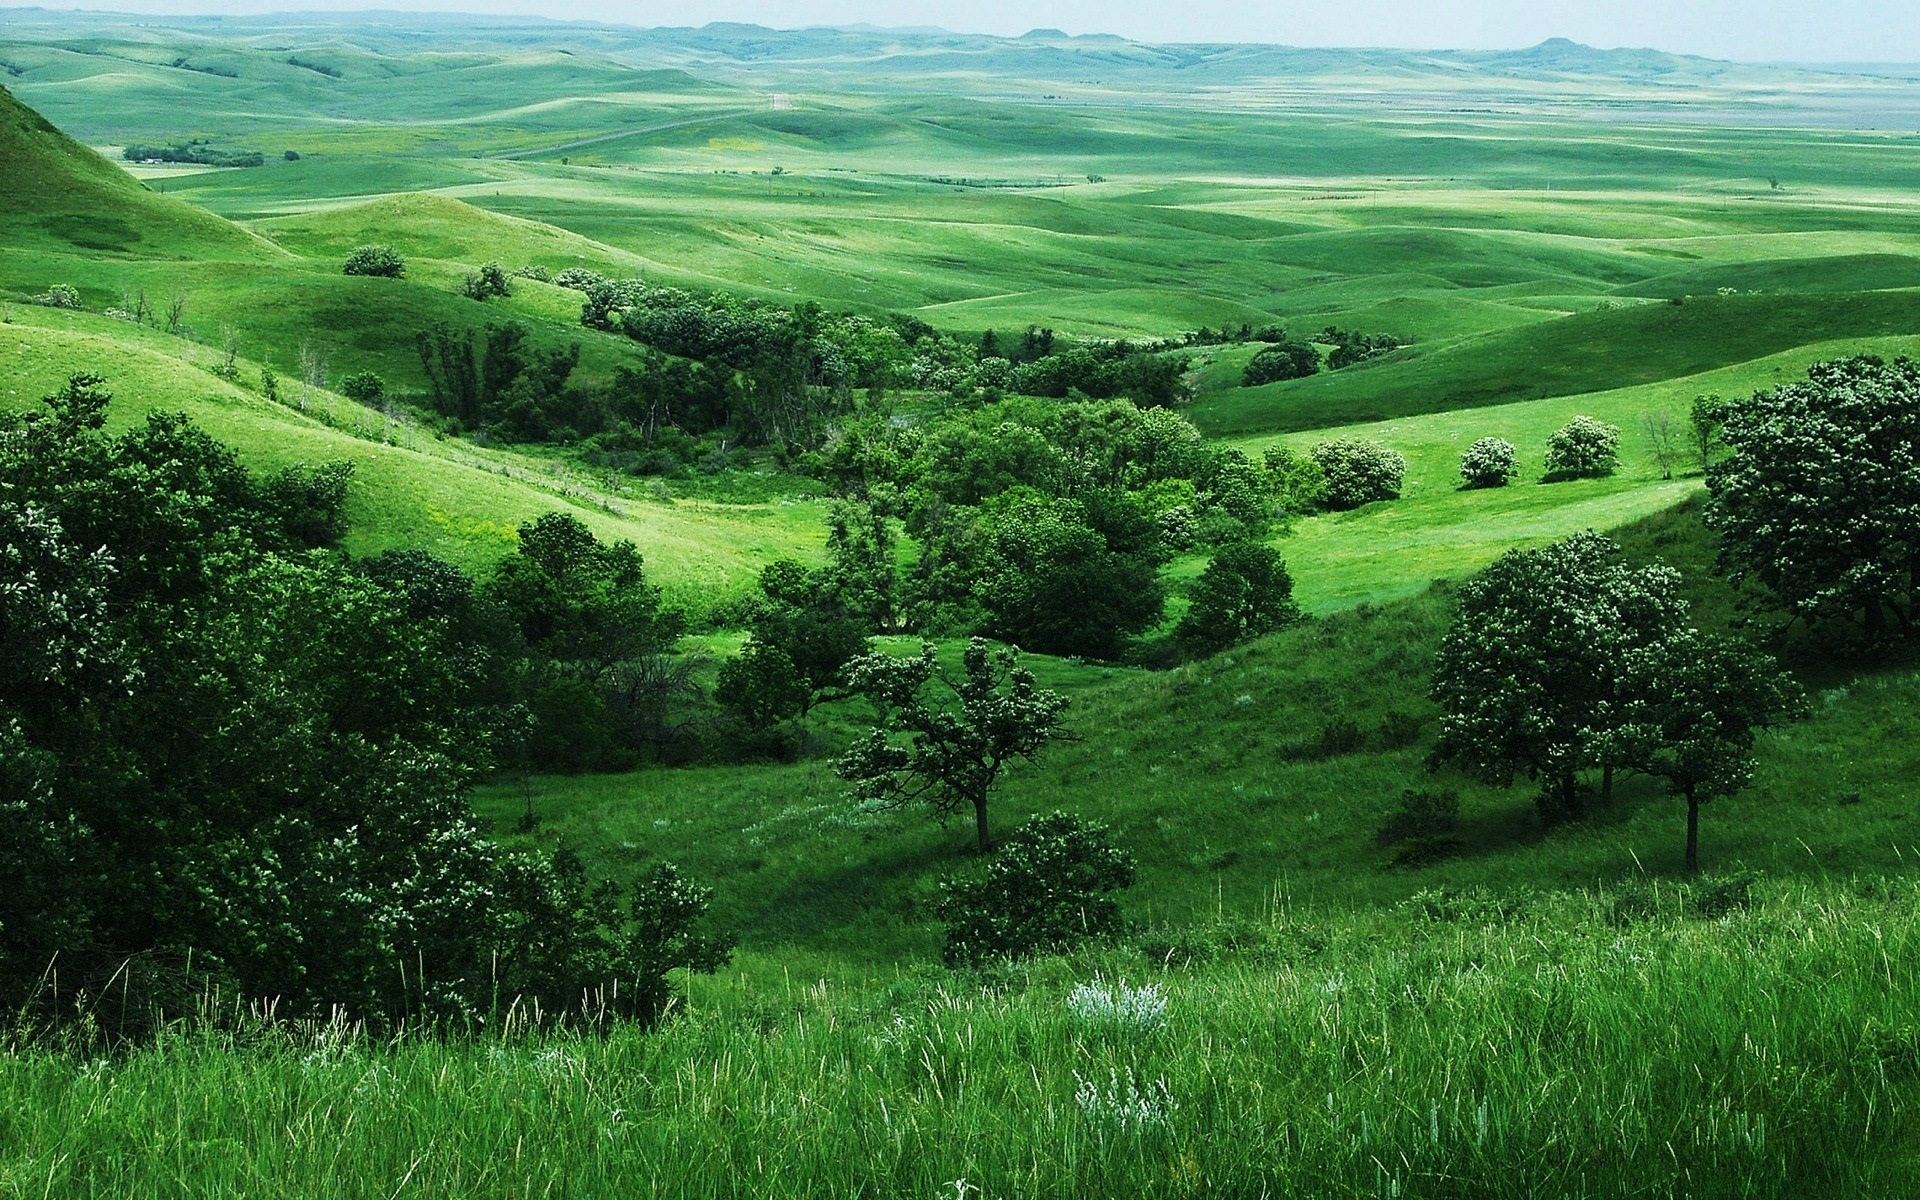 Wallpaper Green Nature Grass Trees Slope 1920x1200 Hd Picture Image